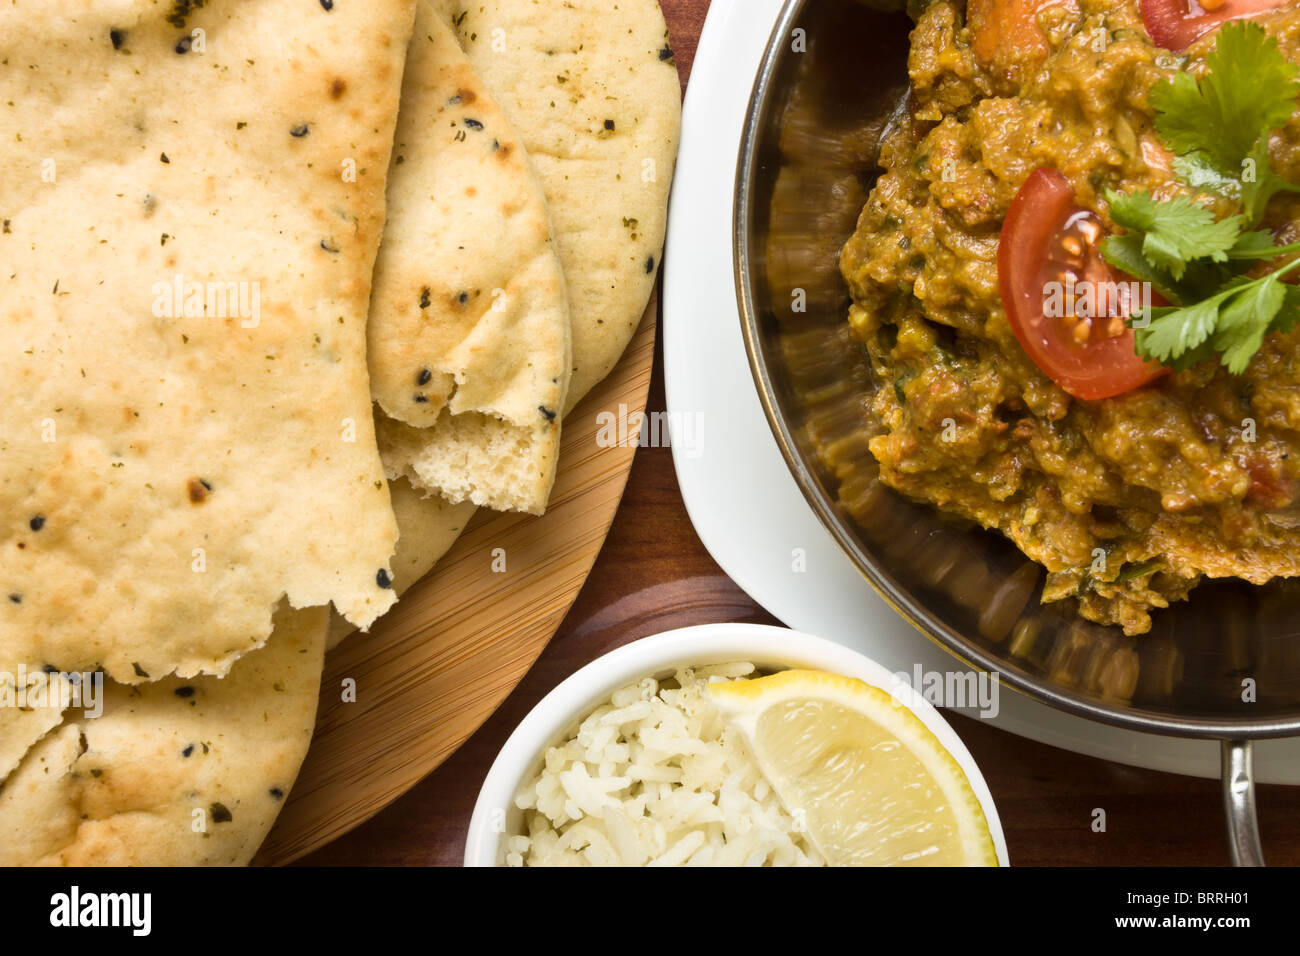 Indian curry meal of spicy chicken rice and naan bread stock photo indian curry meal of spicy chicken rice and naan bread forumfinder Gallery